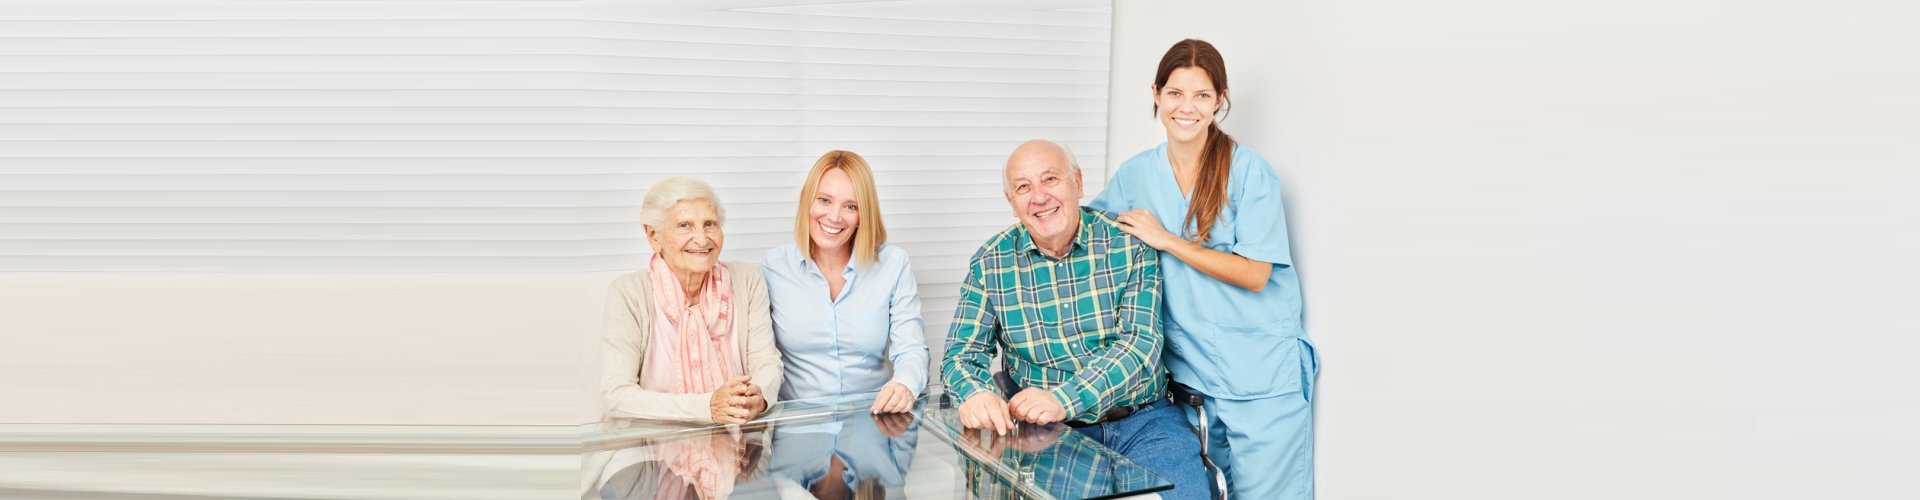 senior couple and two female caregivers